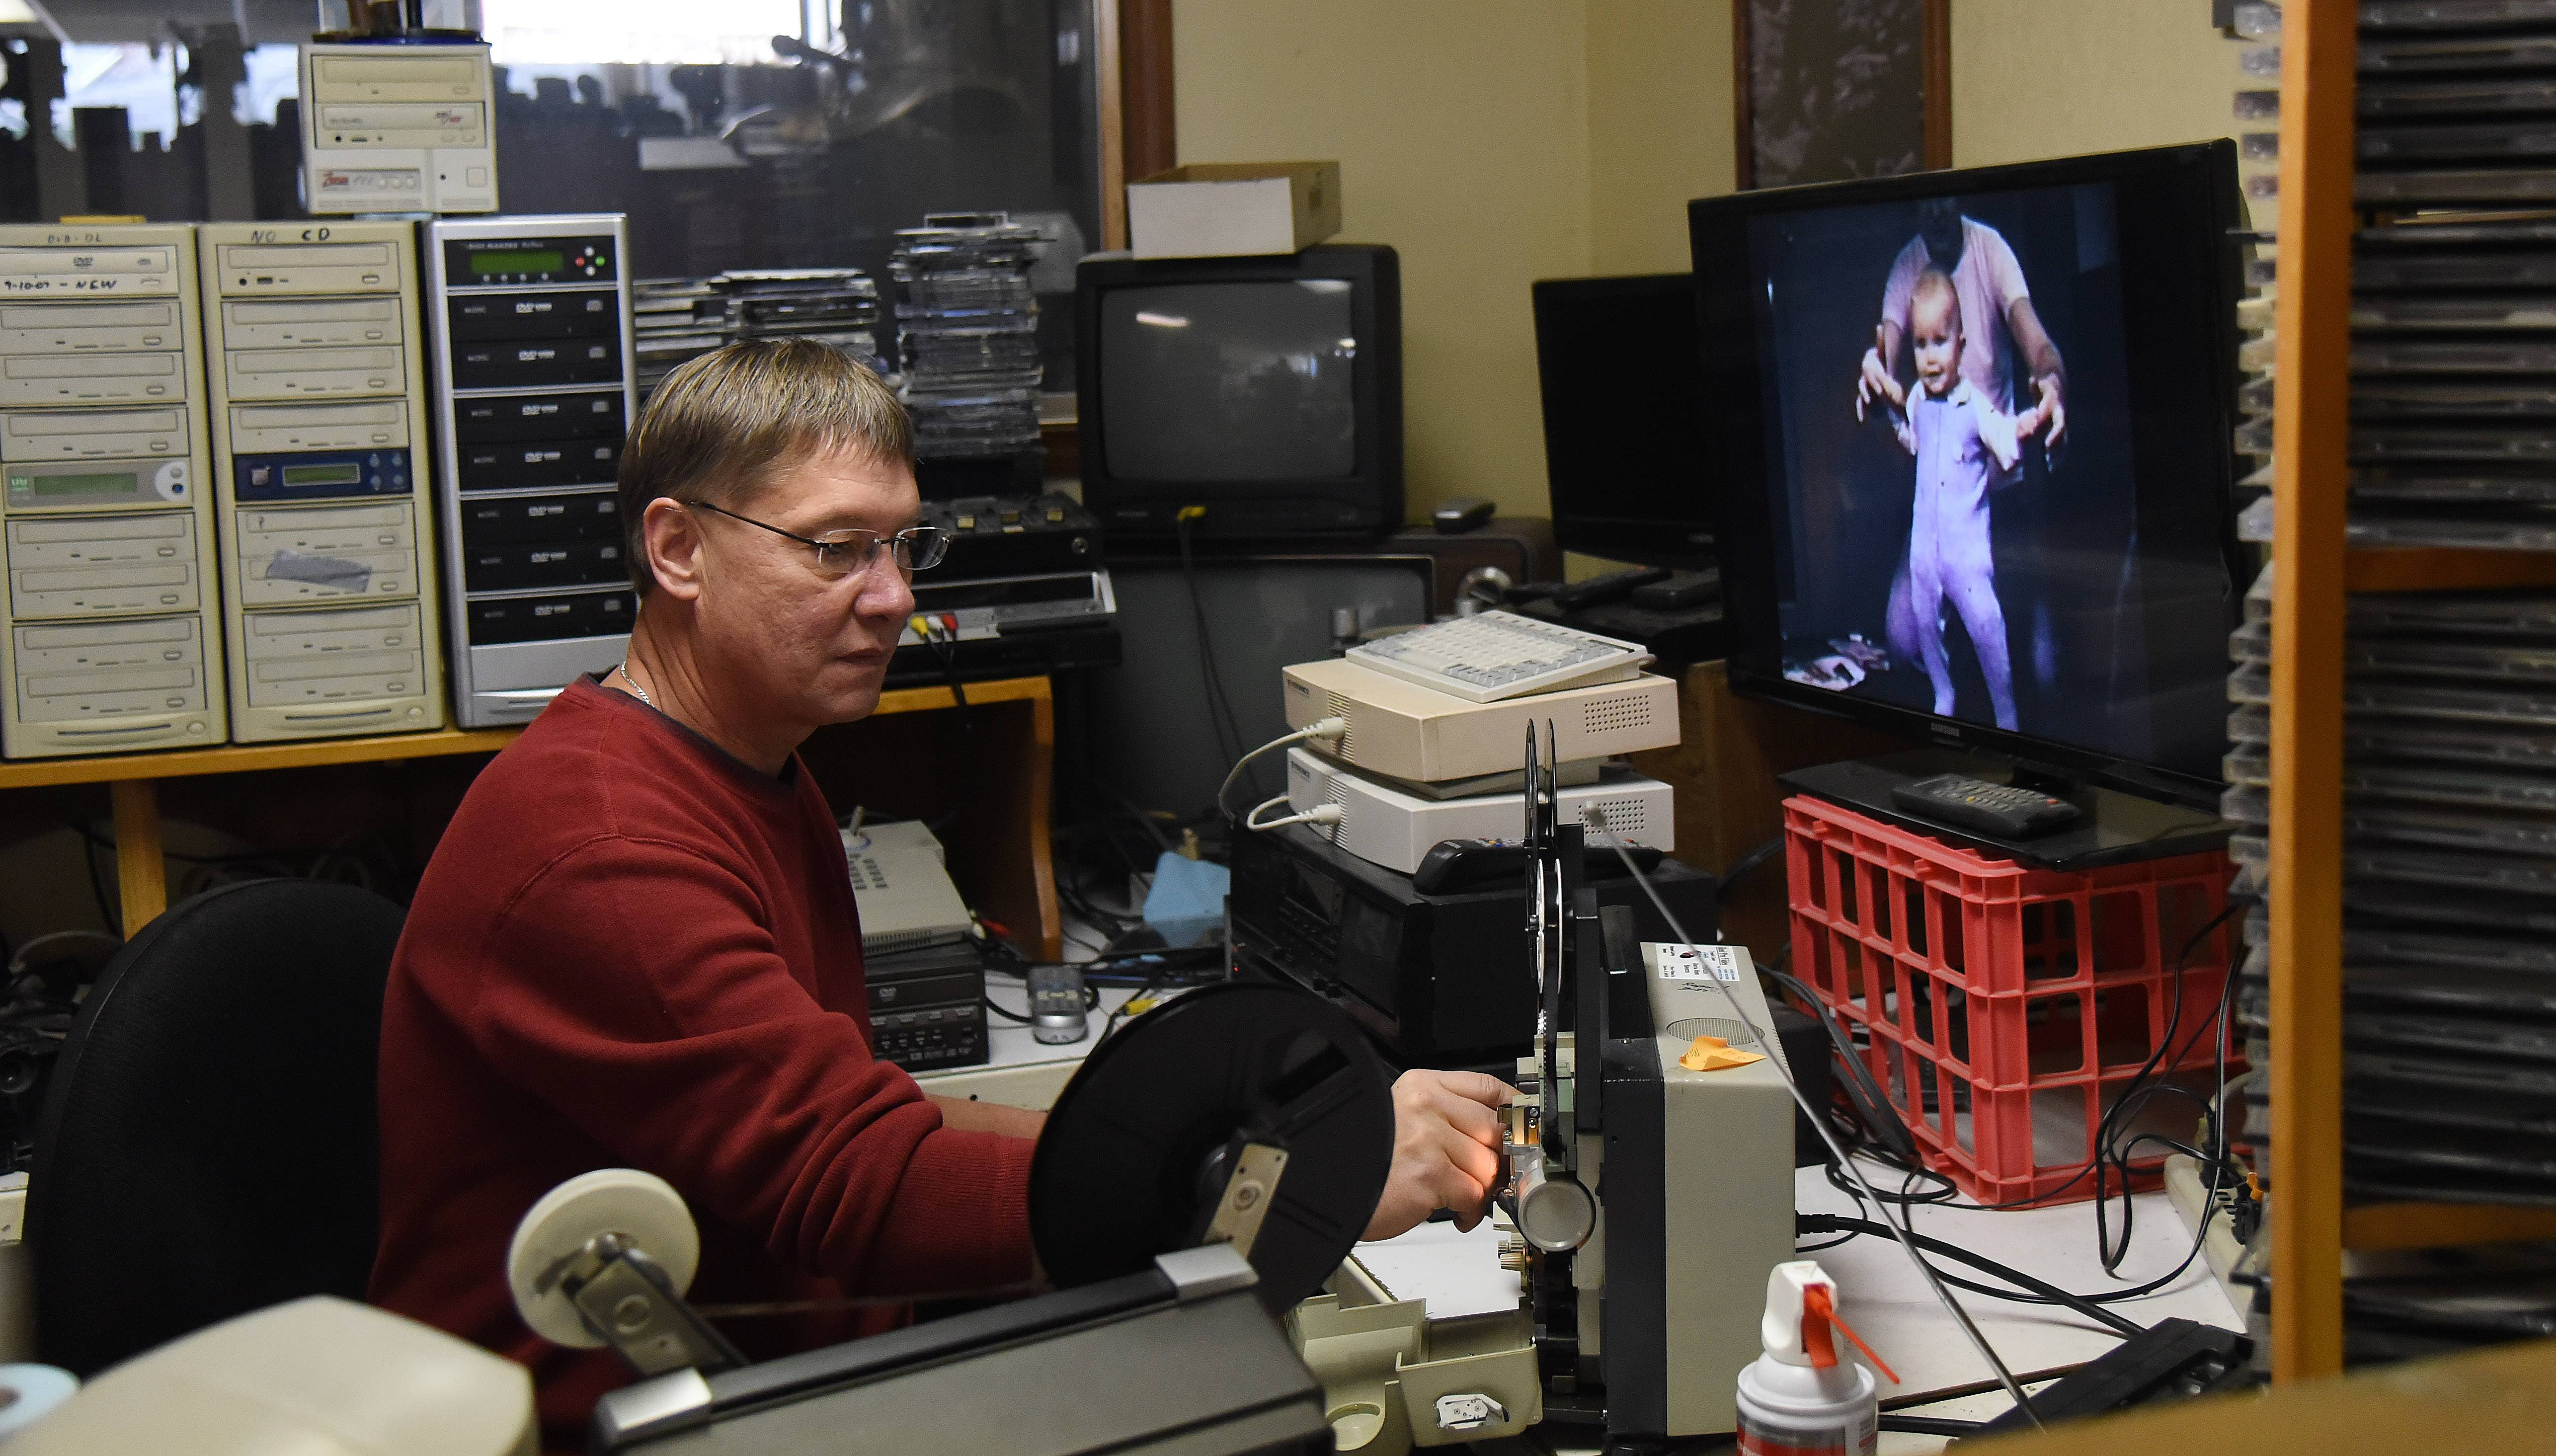 Brian LaVoy converts an old 8 mm film to digital media at Reel Pro Video in Batavia Monday. LaVoy is the new owner of the business, as his father Richard recently retired.